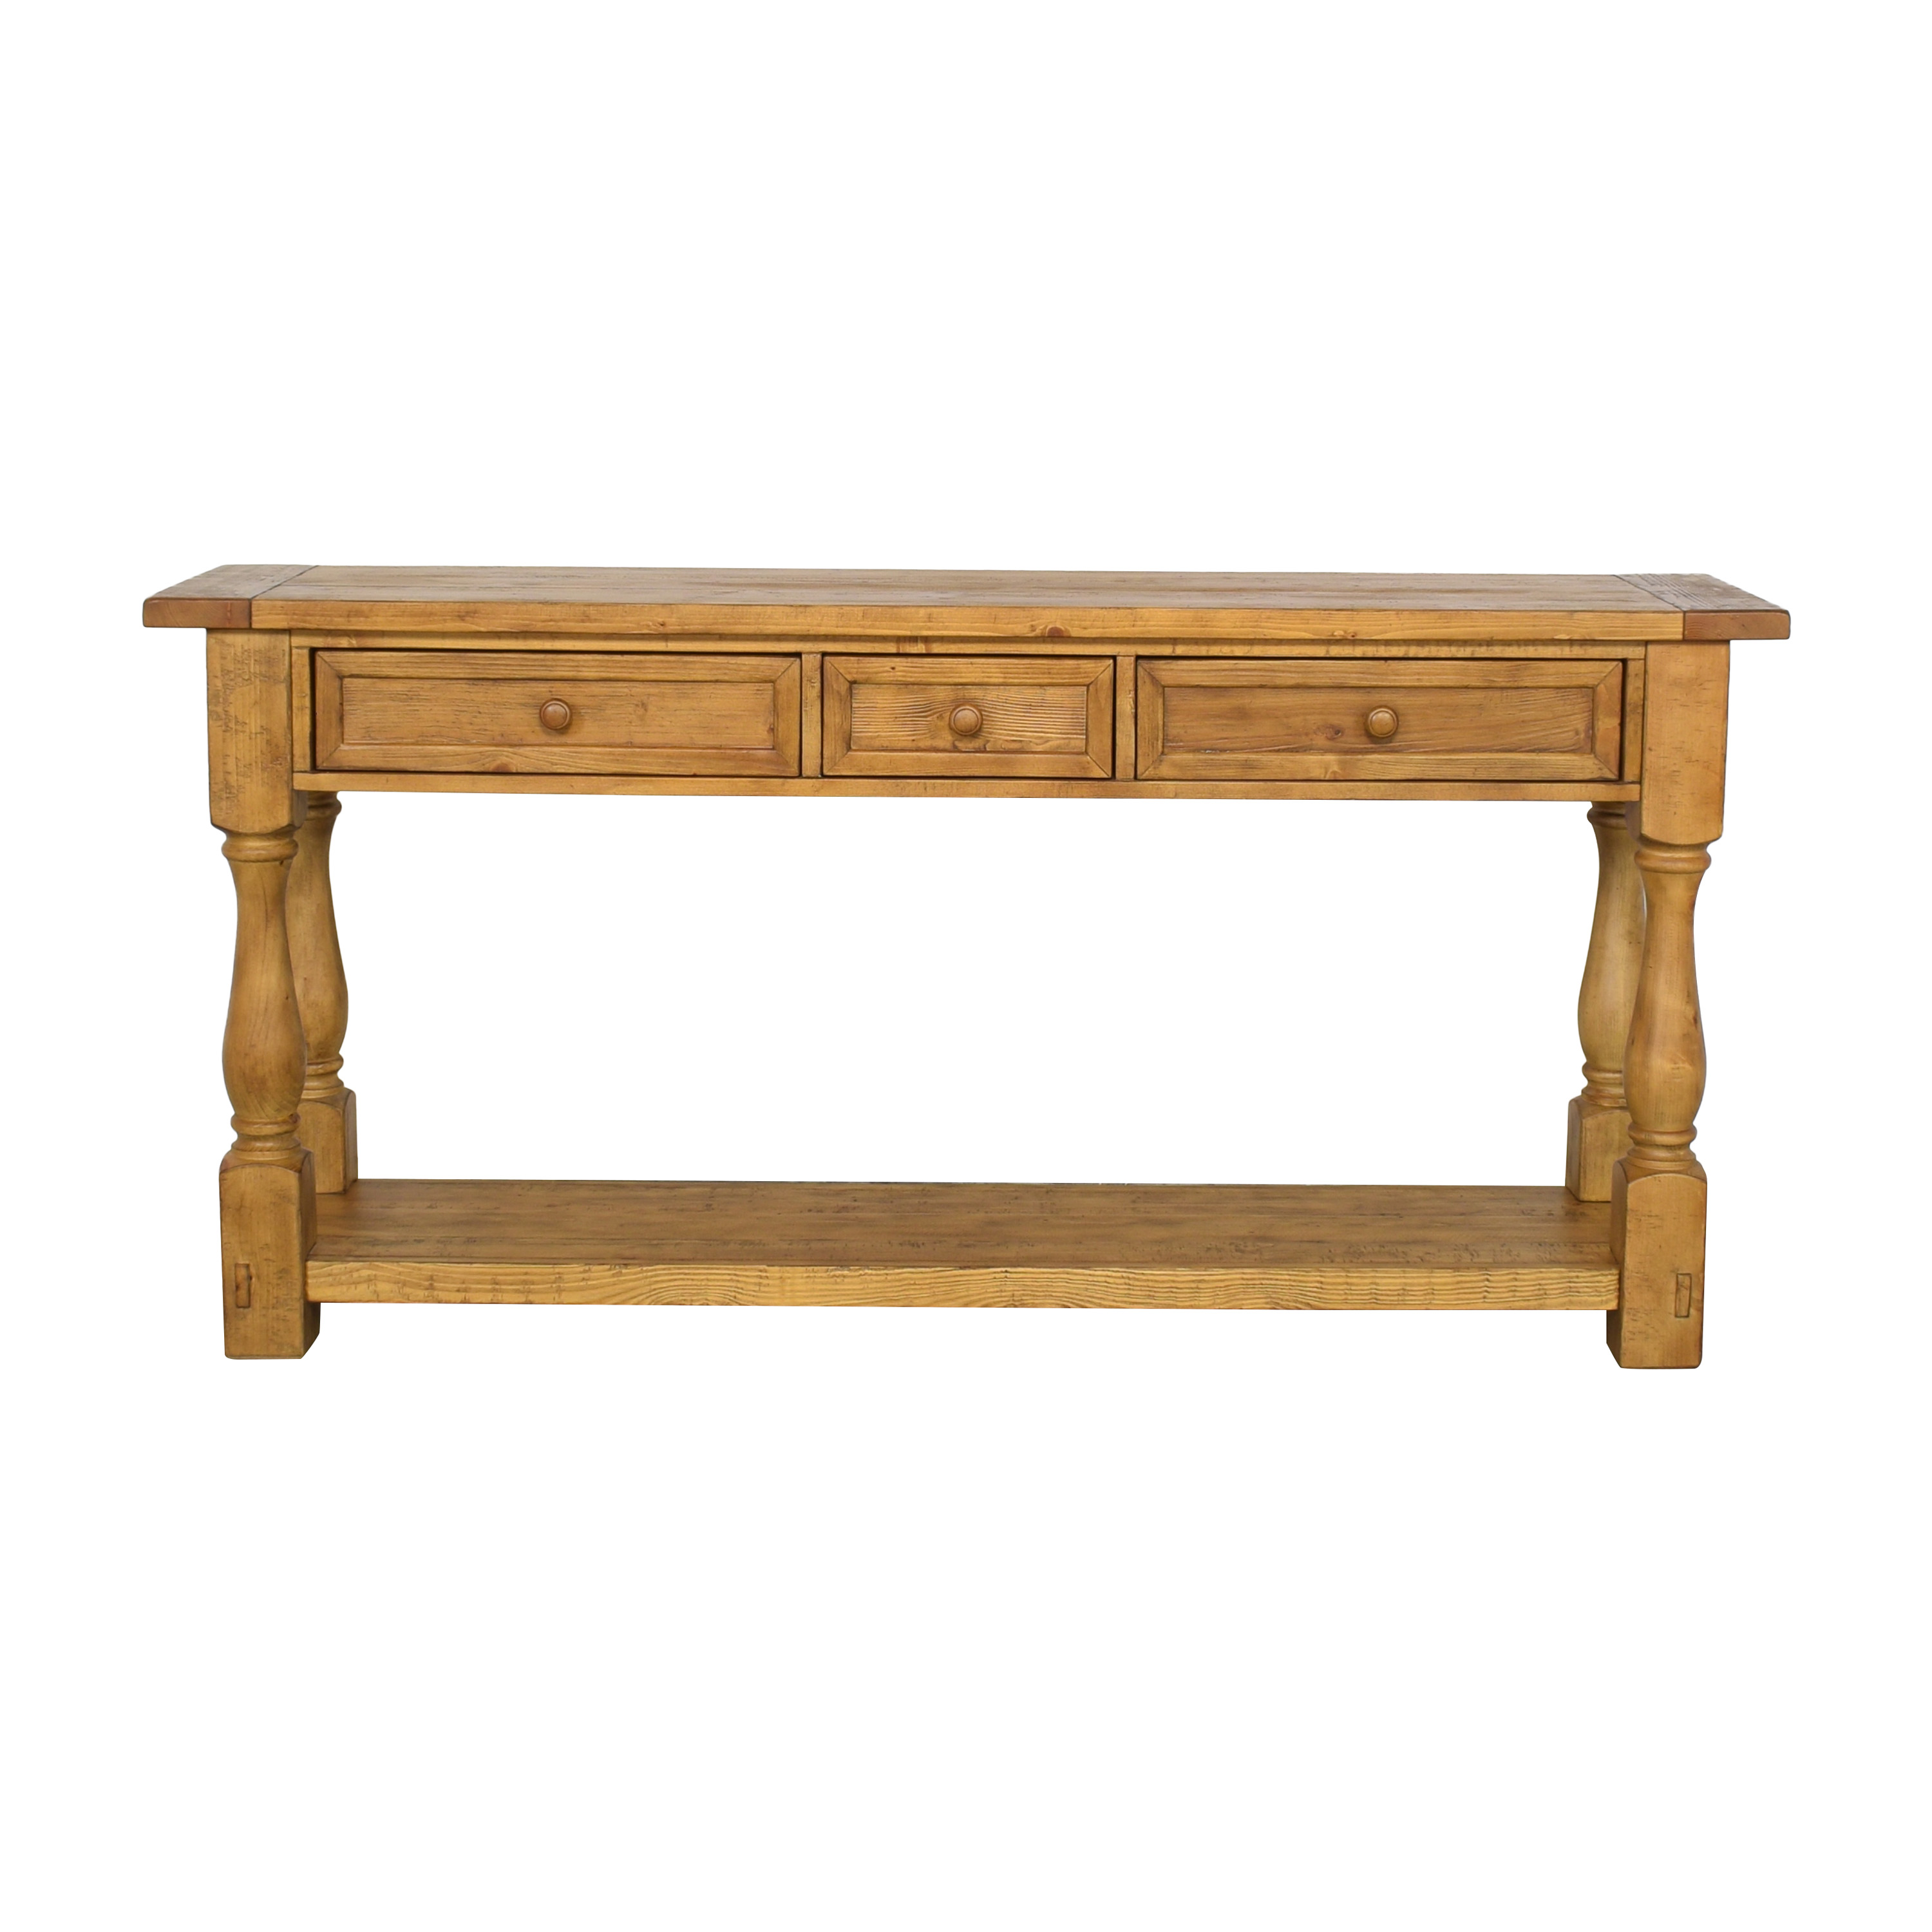 Pottery Barn Pottery Barn Console Table coupon